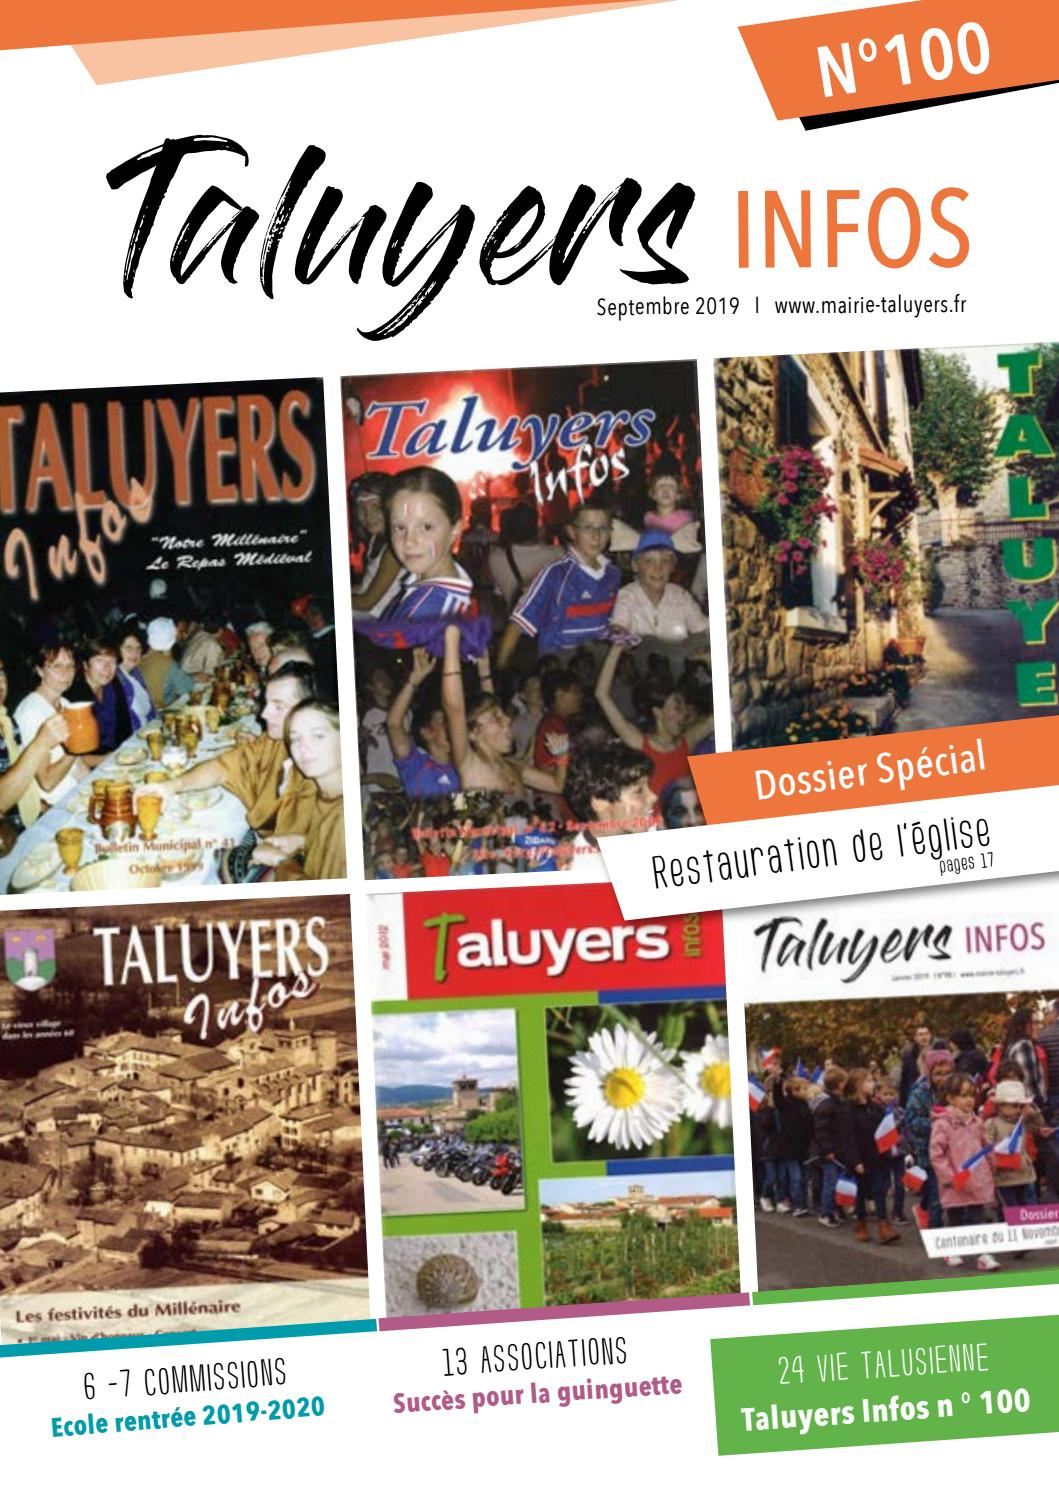 Taluyers Infos Septembre 2019 By Mairie De Taluyers Issuu